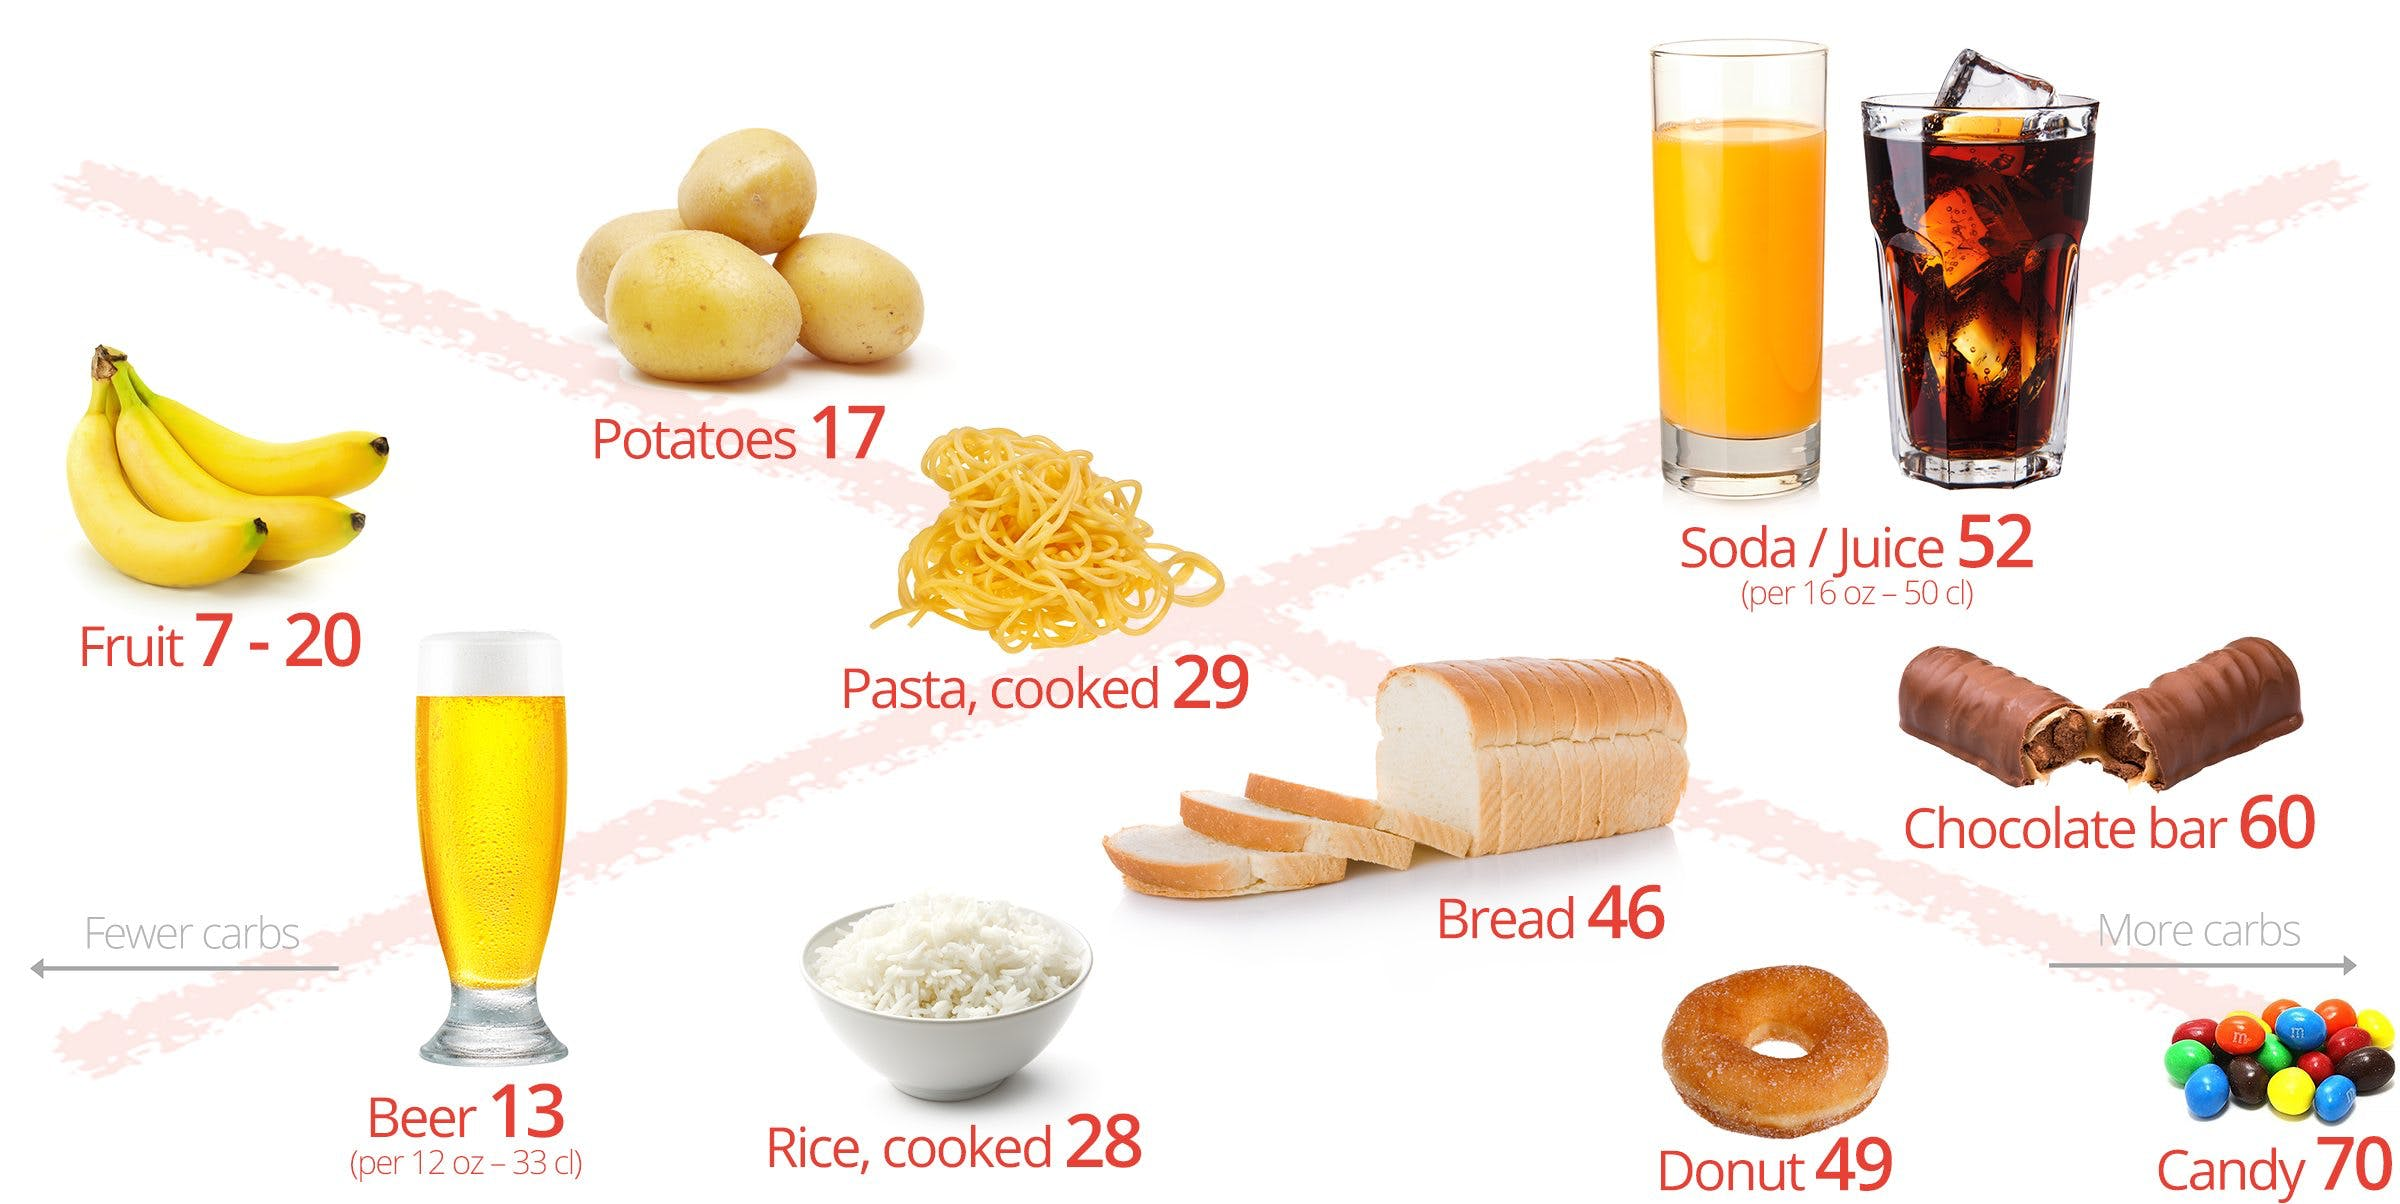 Foods to avoid on low carb: bread, pasta, rice, potatoes, fruit, beer, soda, juice, candy